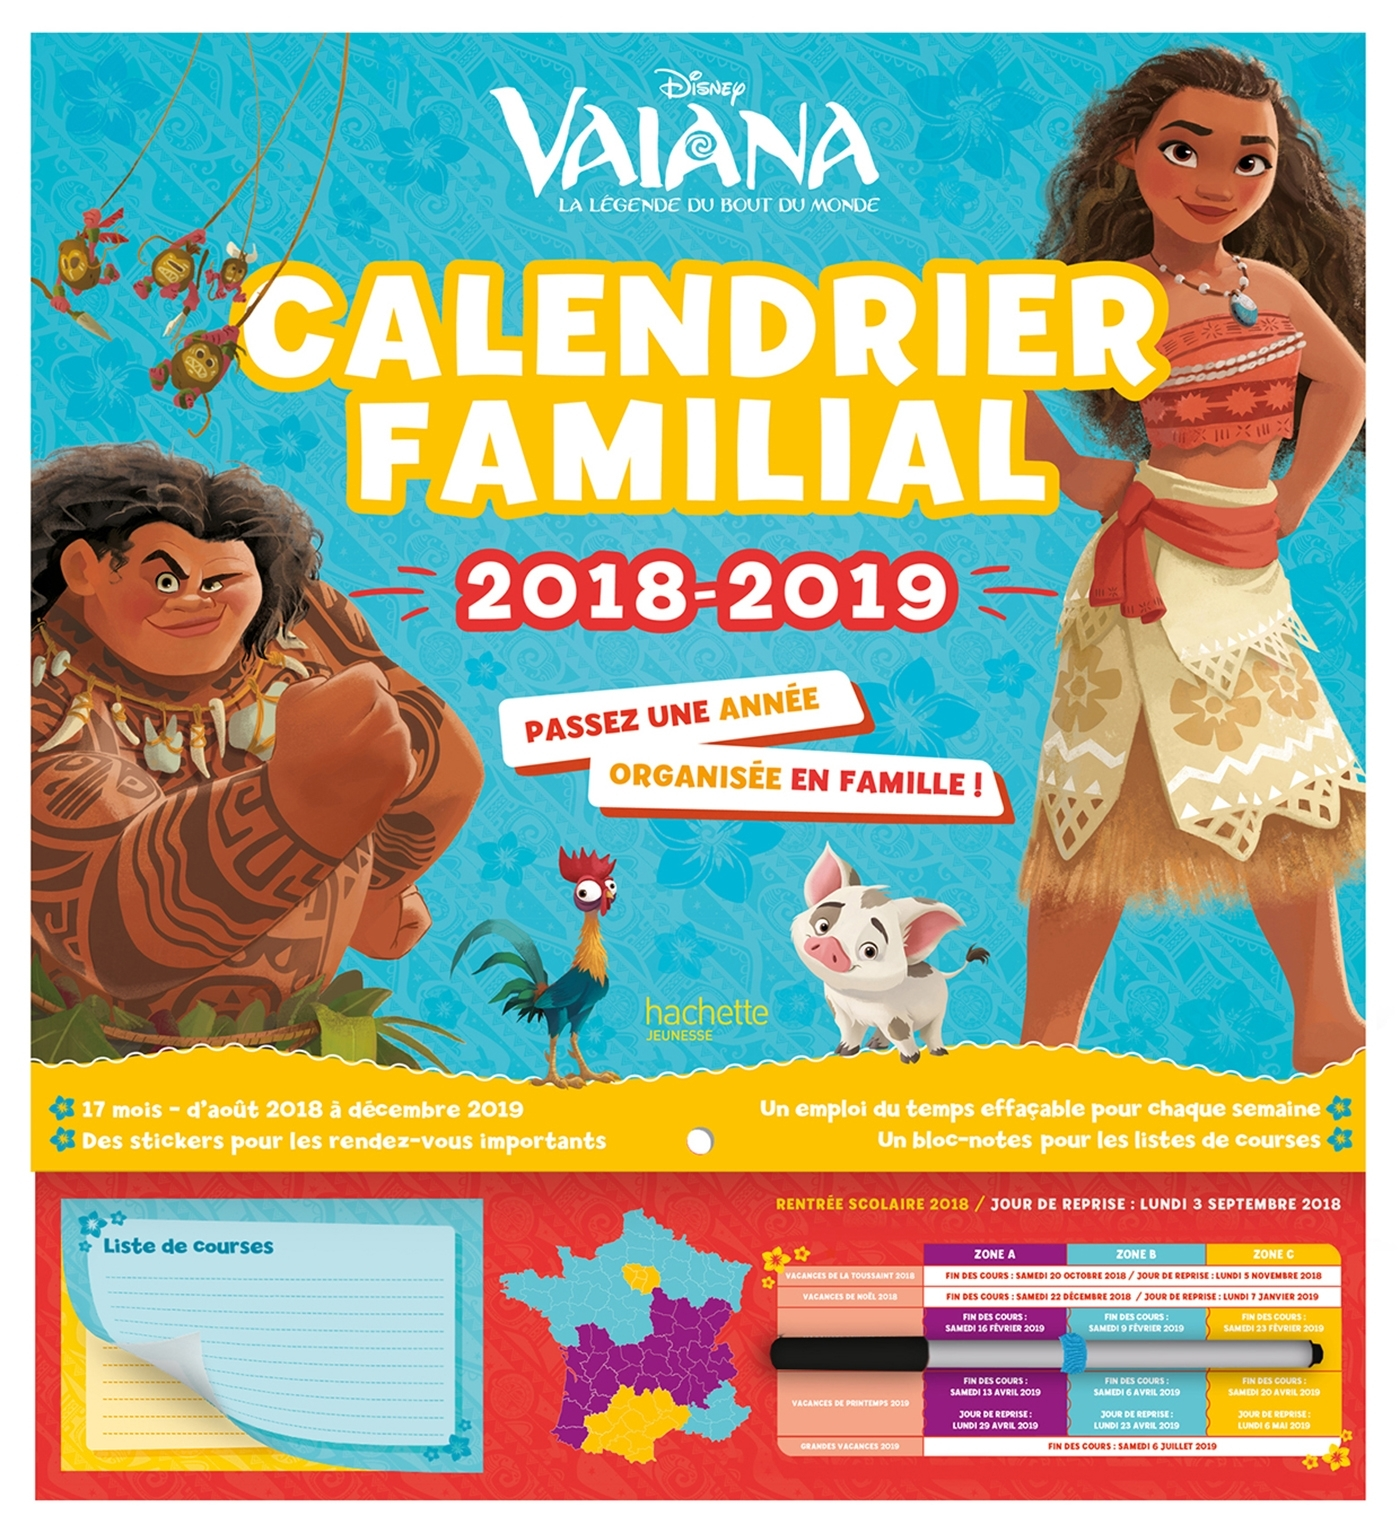 VAIANA - CALENDRIER FAMILIAL - UNE ANNEE ORGANISEE